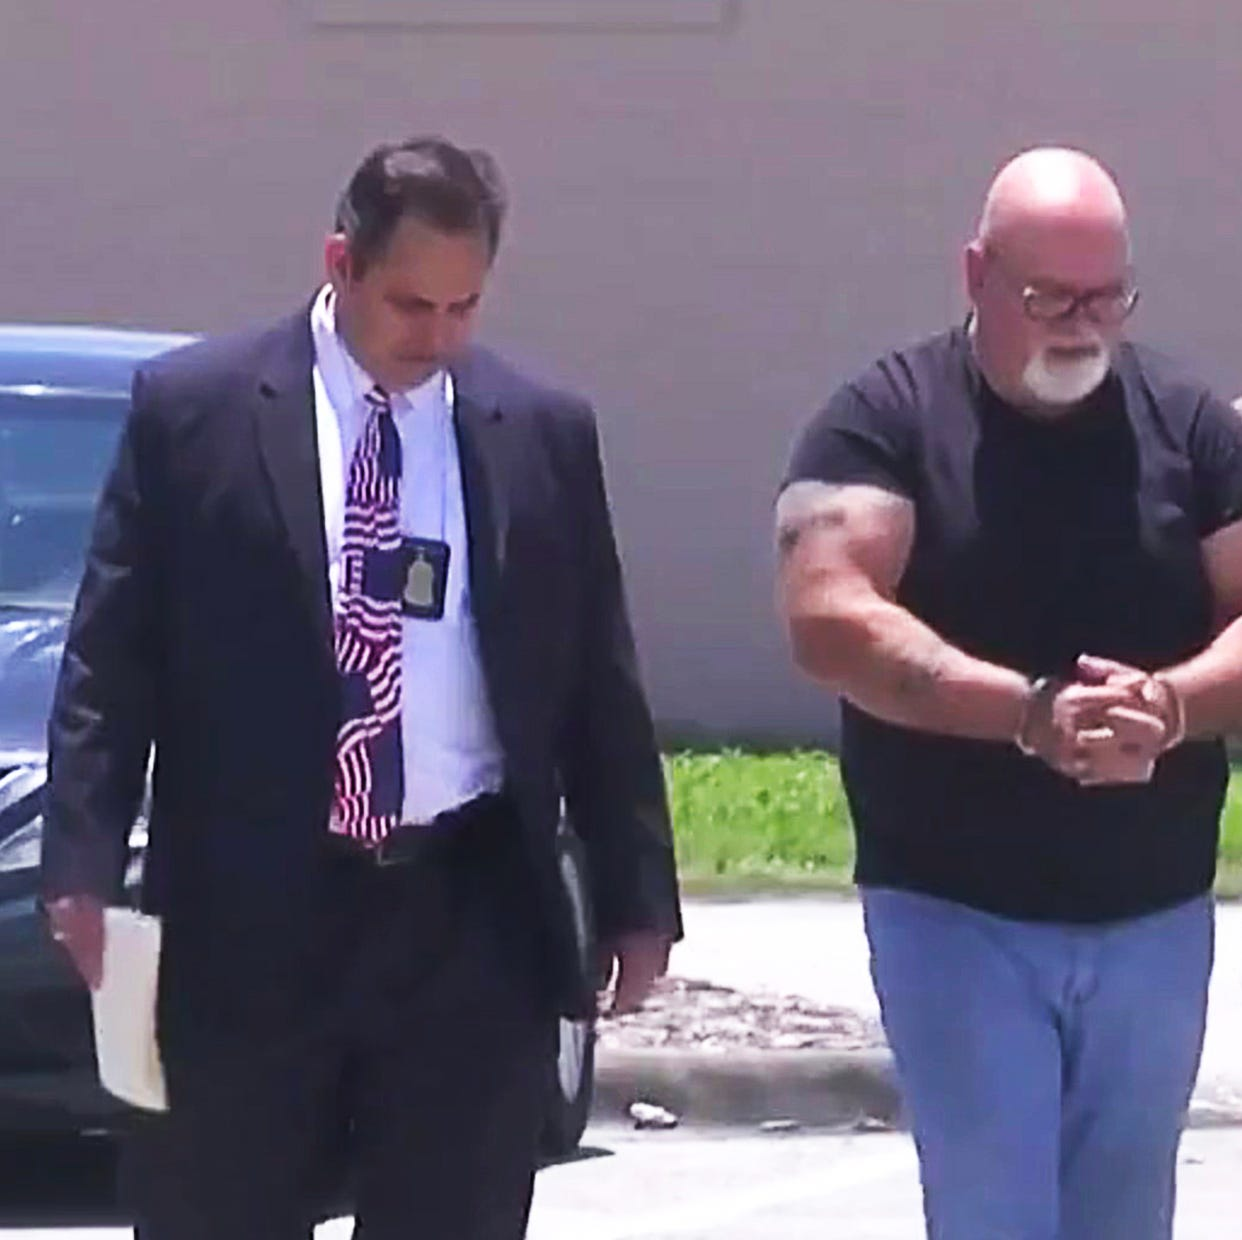 Former Palm Bay deputy manager Dave Isnardi arrested, charged with racketeering, other felonies